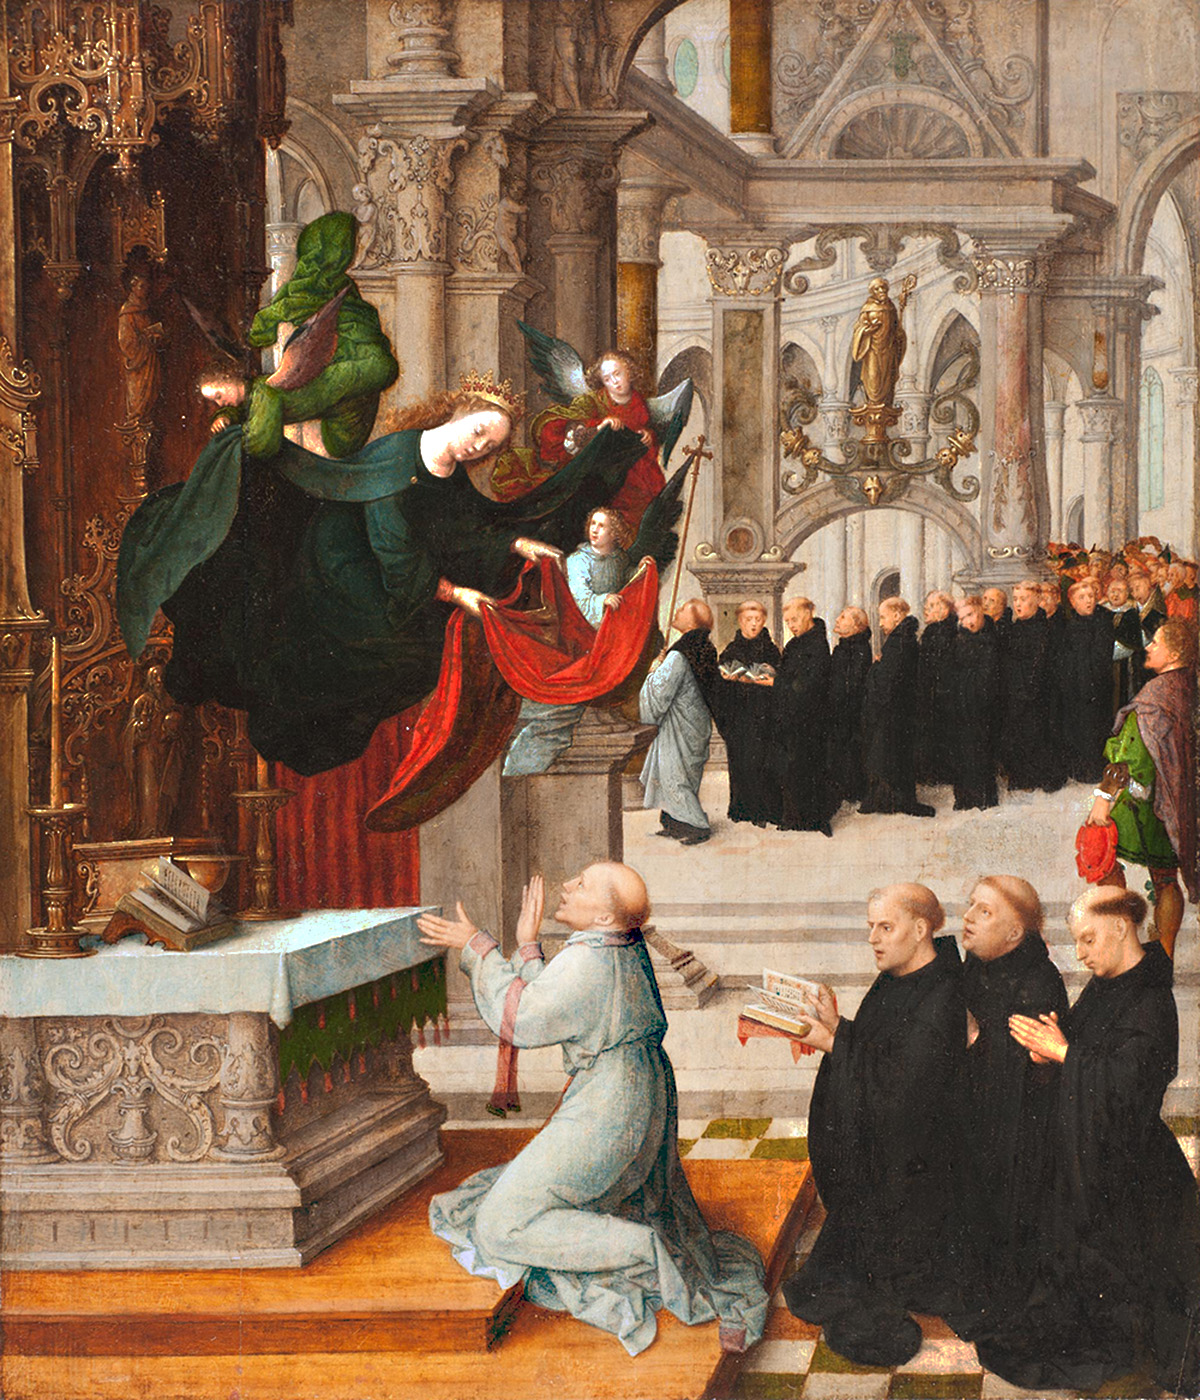 Angles descend on a procession of men worshiping before an altar.